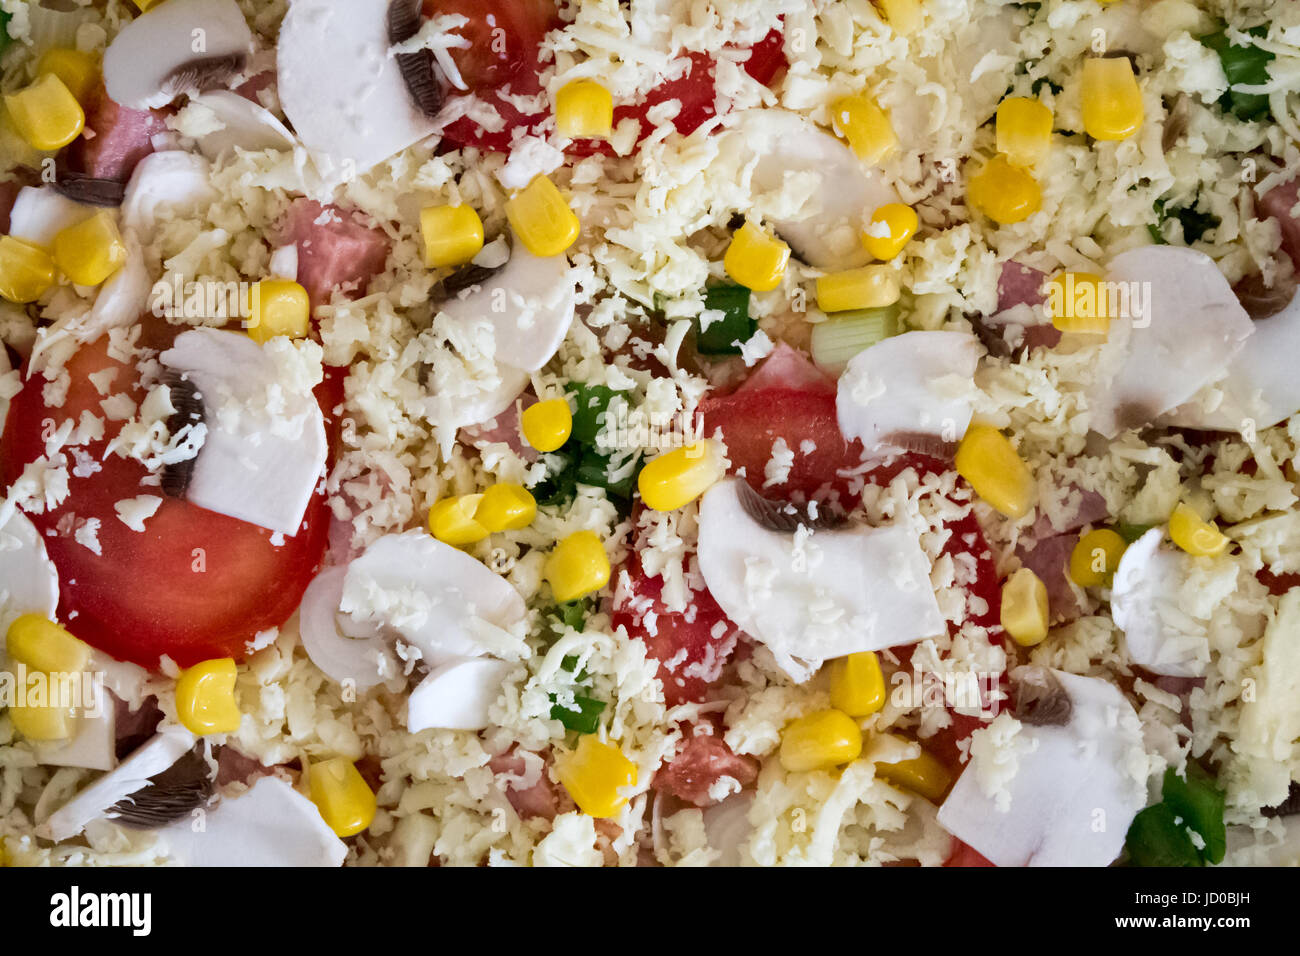 Top view of delicious raw Pizza, macro background. - Stock Image